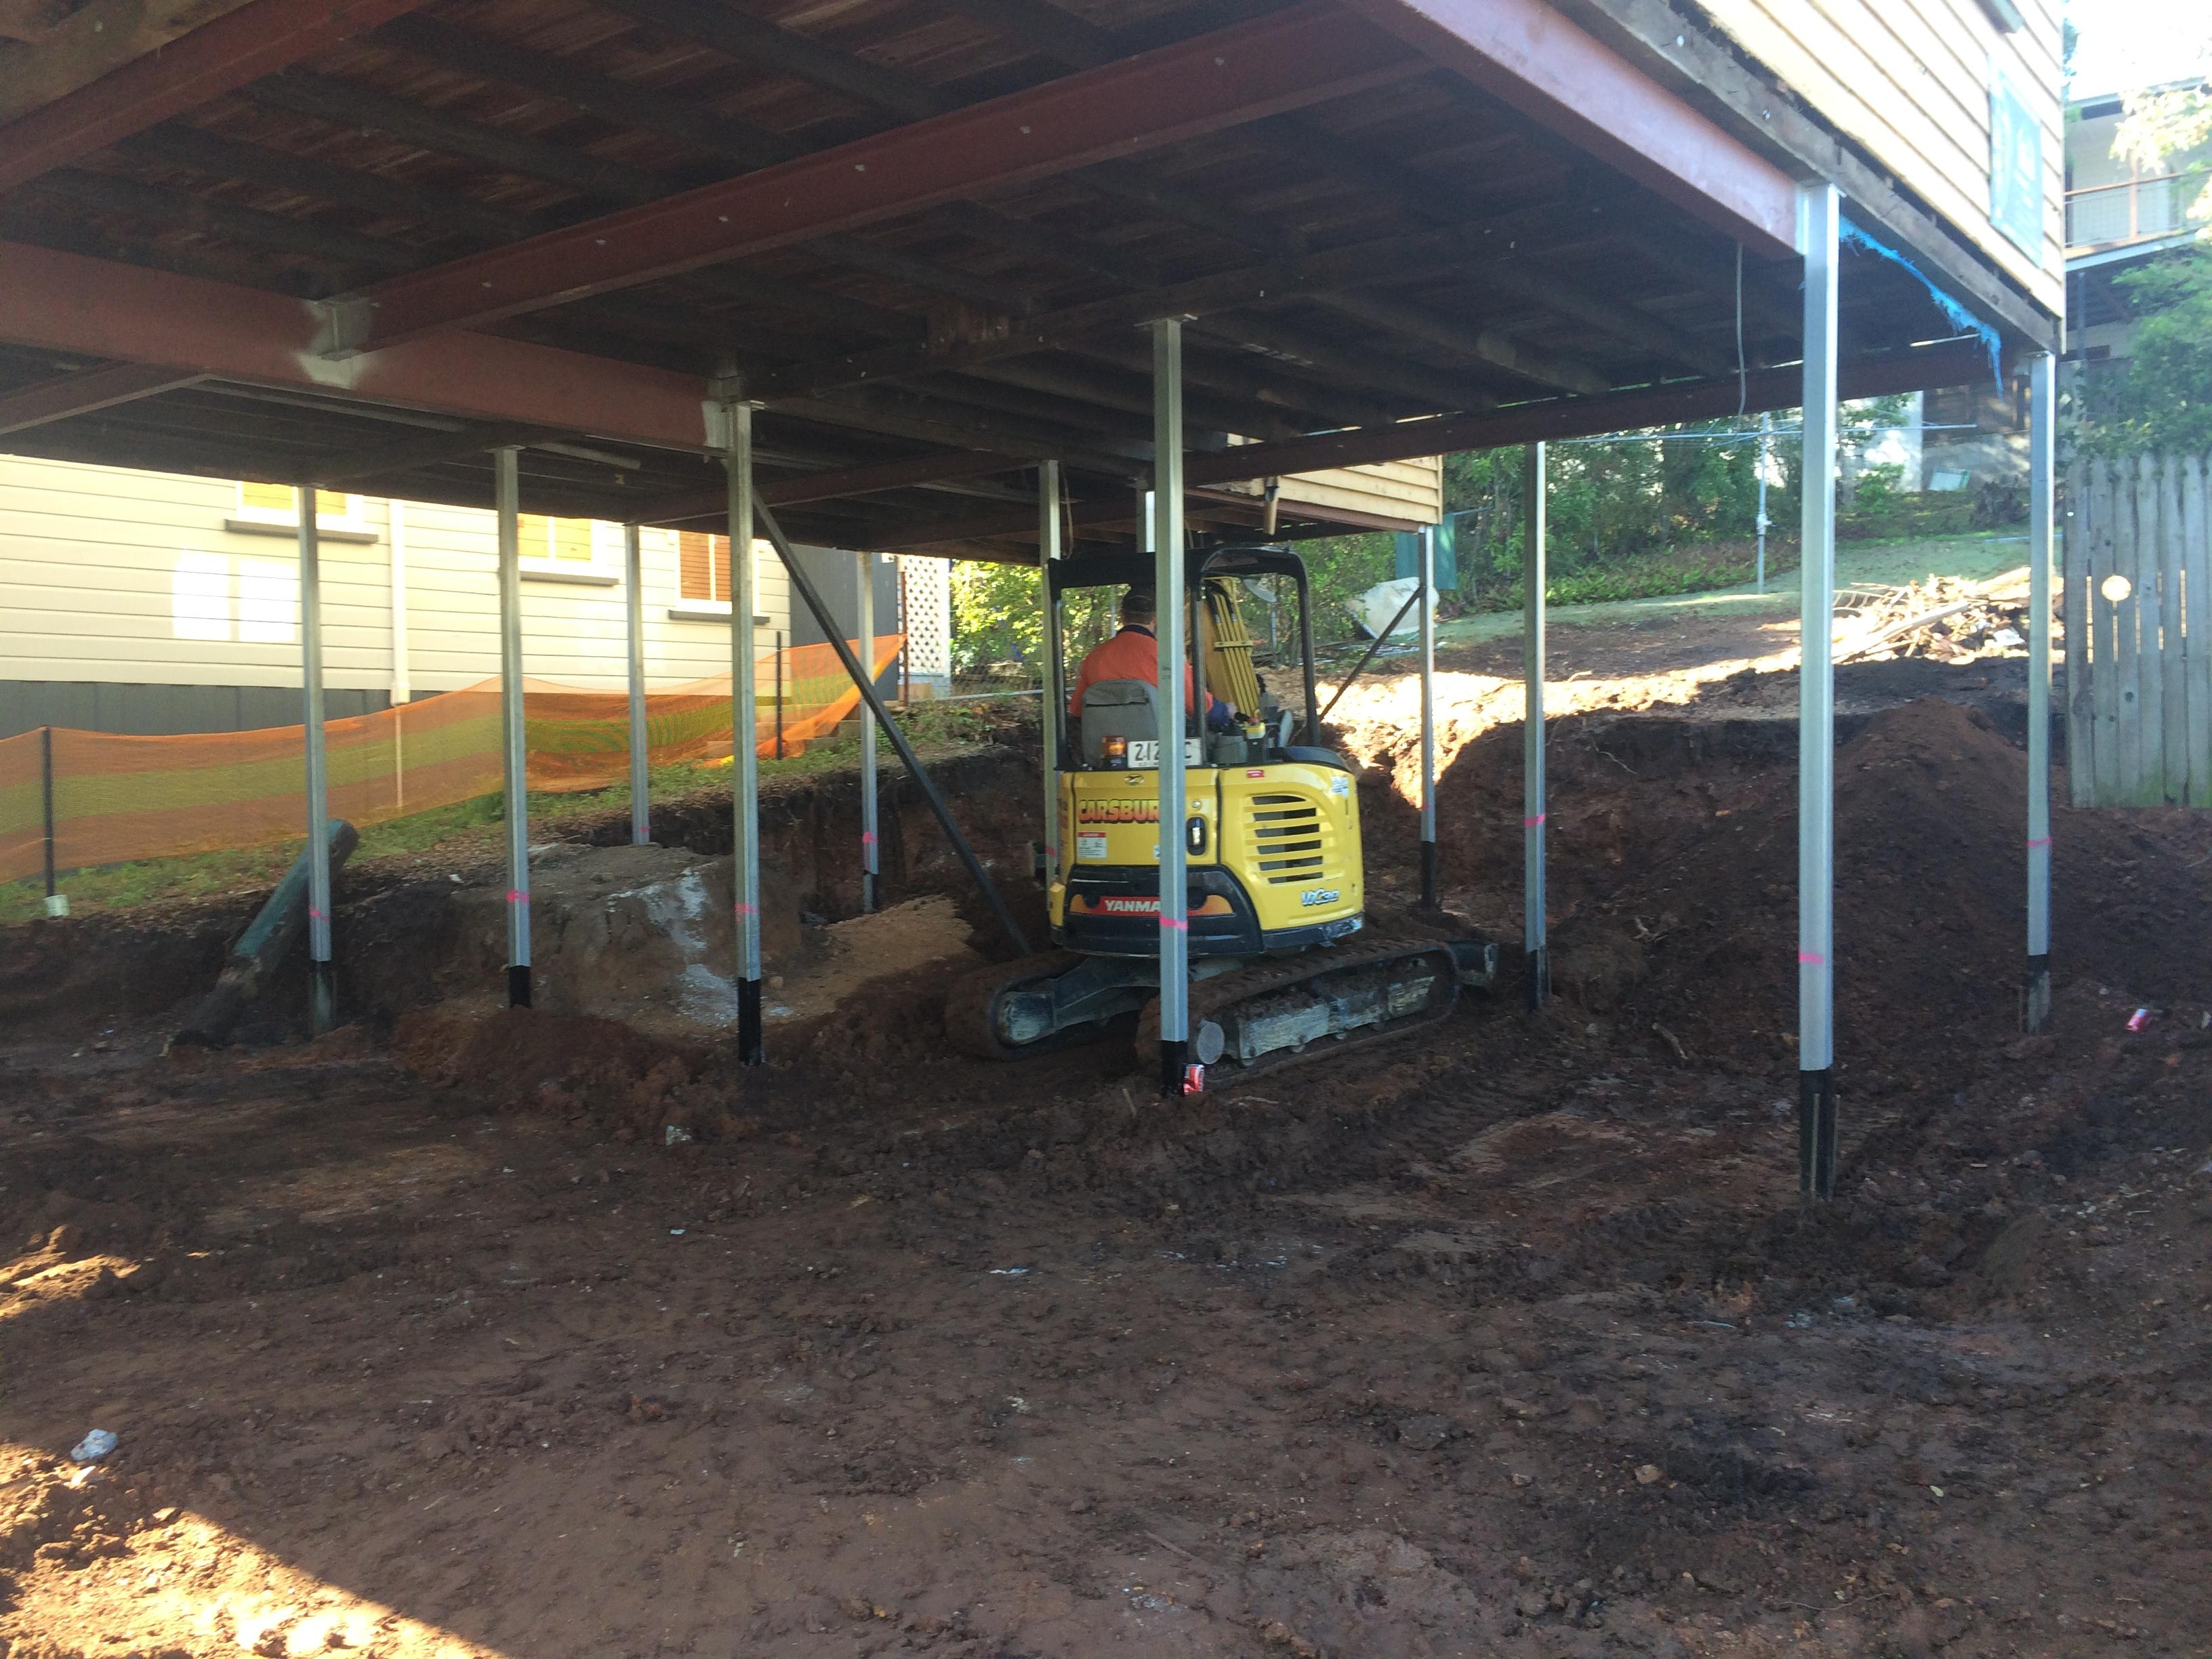 House Raise at Daisy Street - Bishop Construction Services